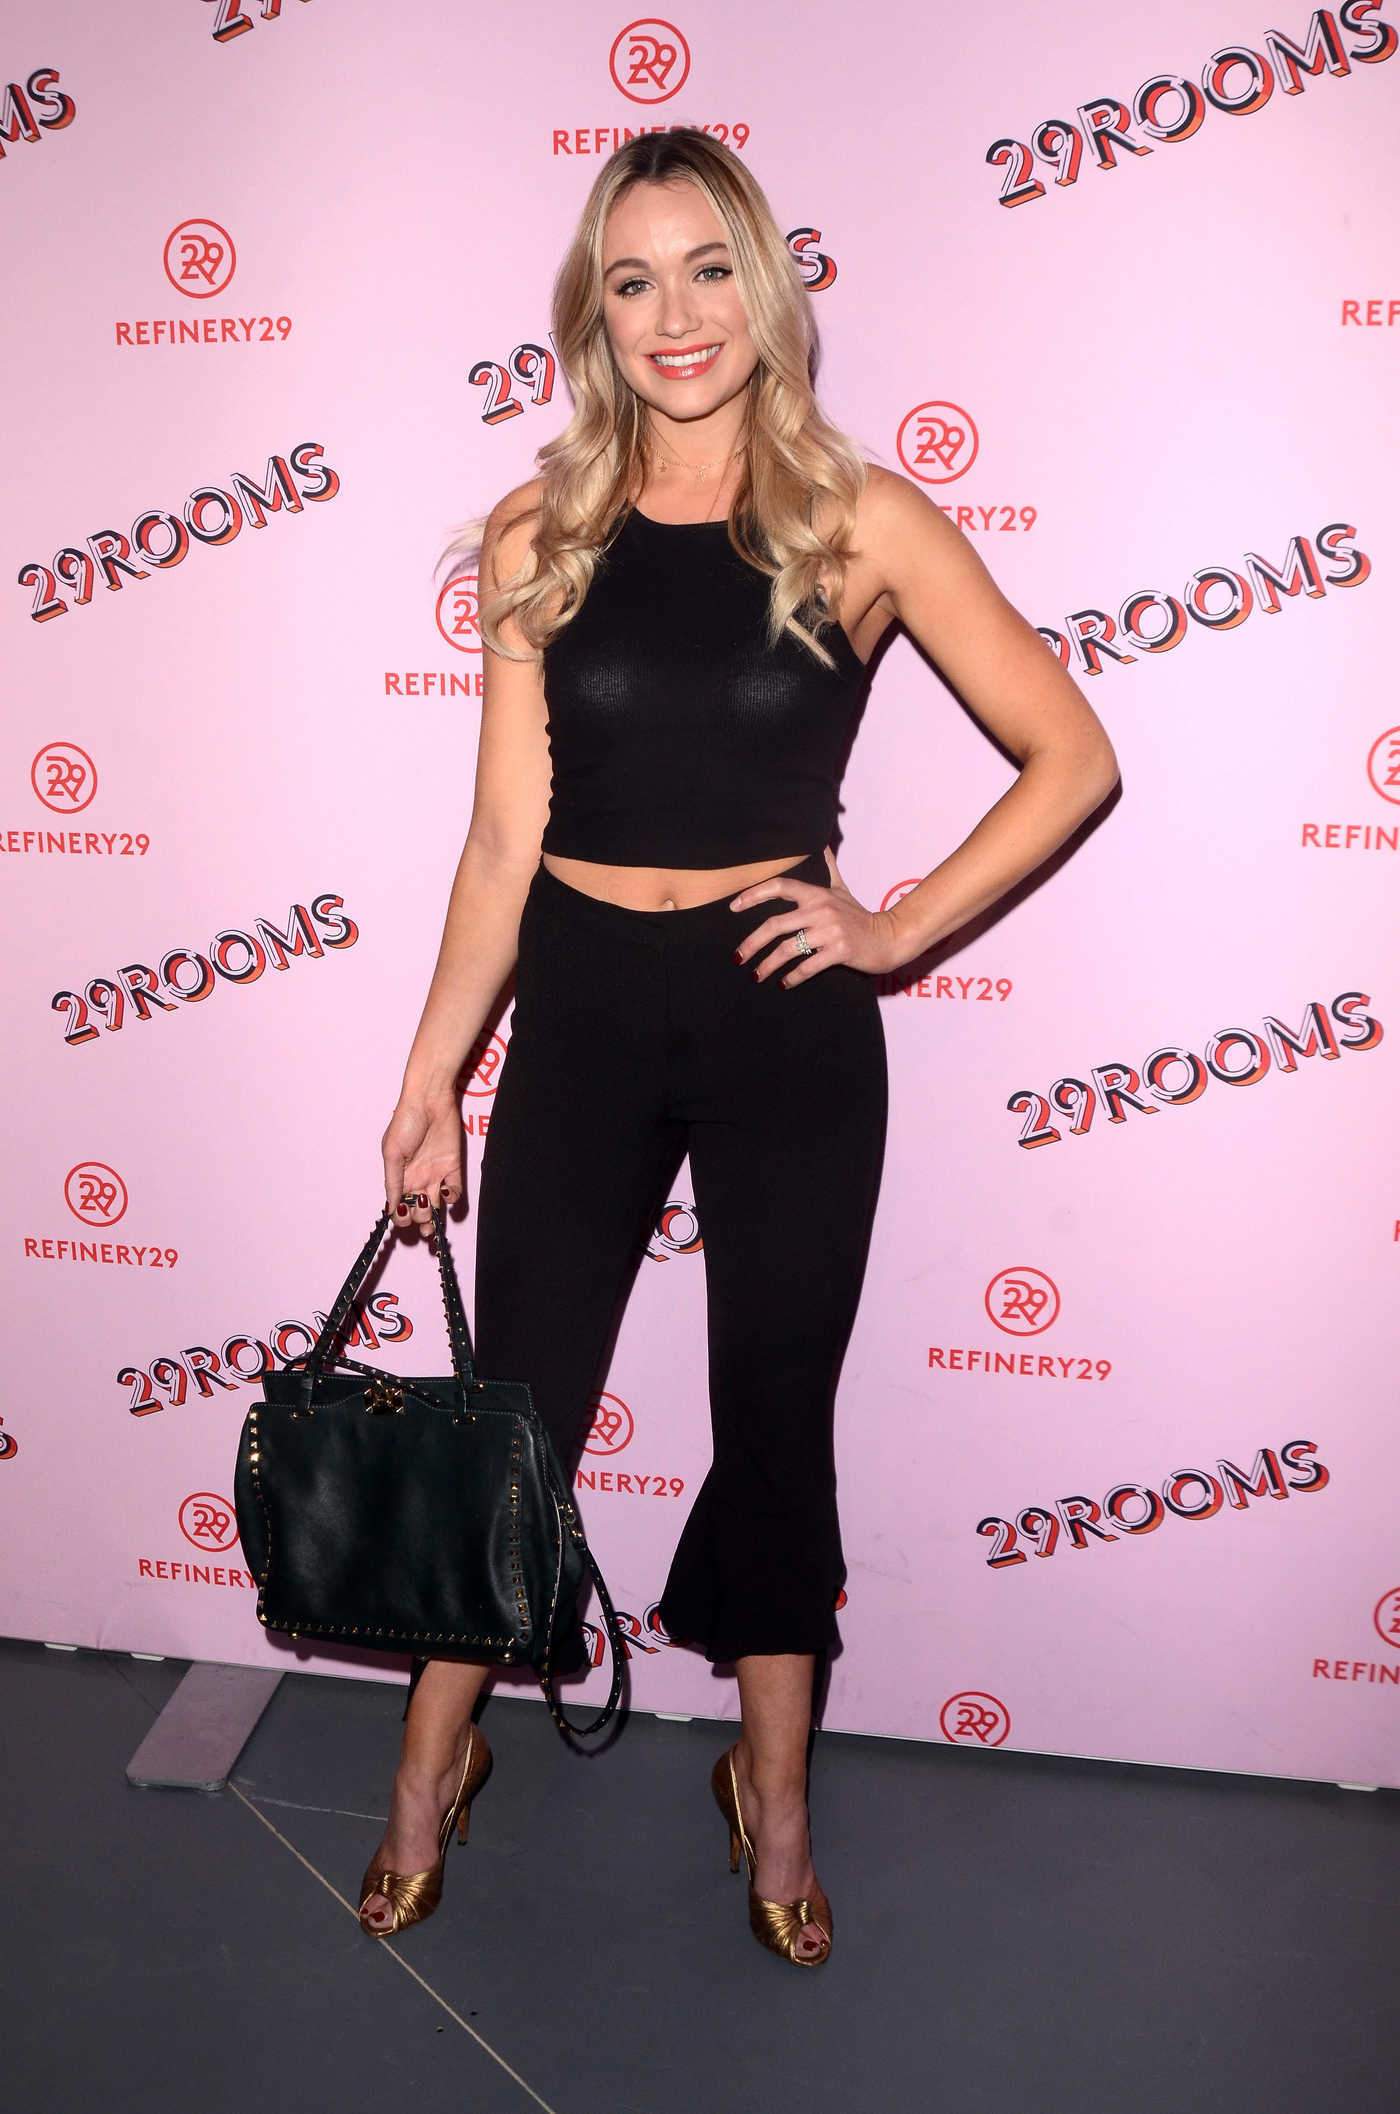 Katrina Bowden at the Refinery29 Rooms Los Angeles: Turn It Into Art Opening Night Party in Los Angeles 12/06/2017